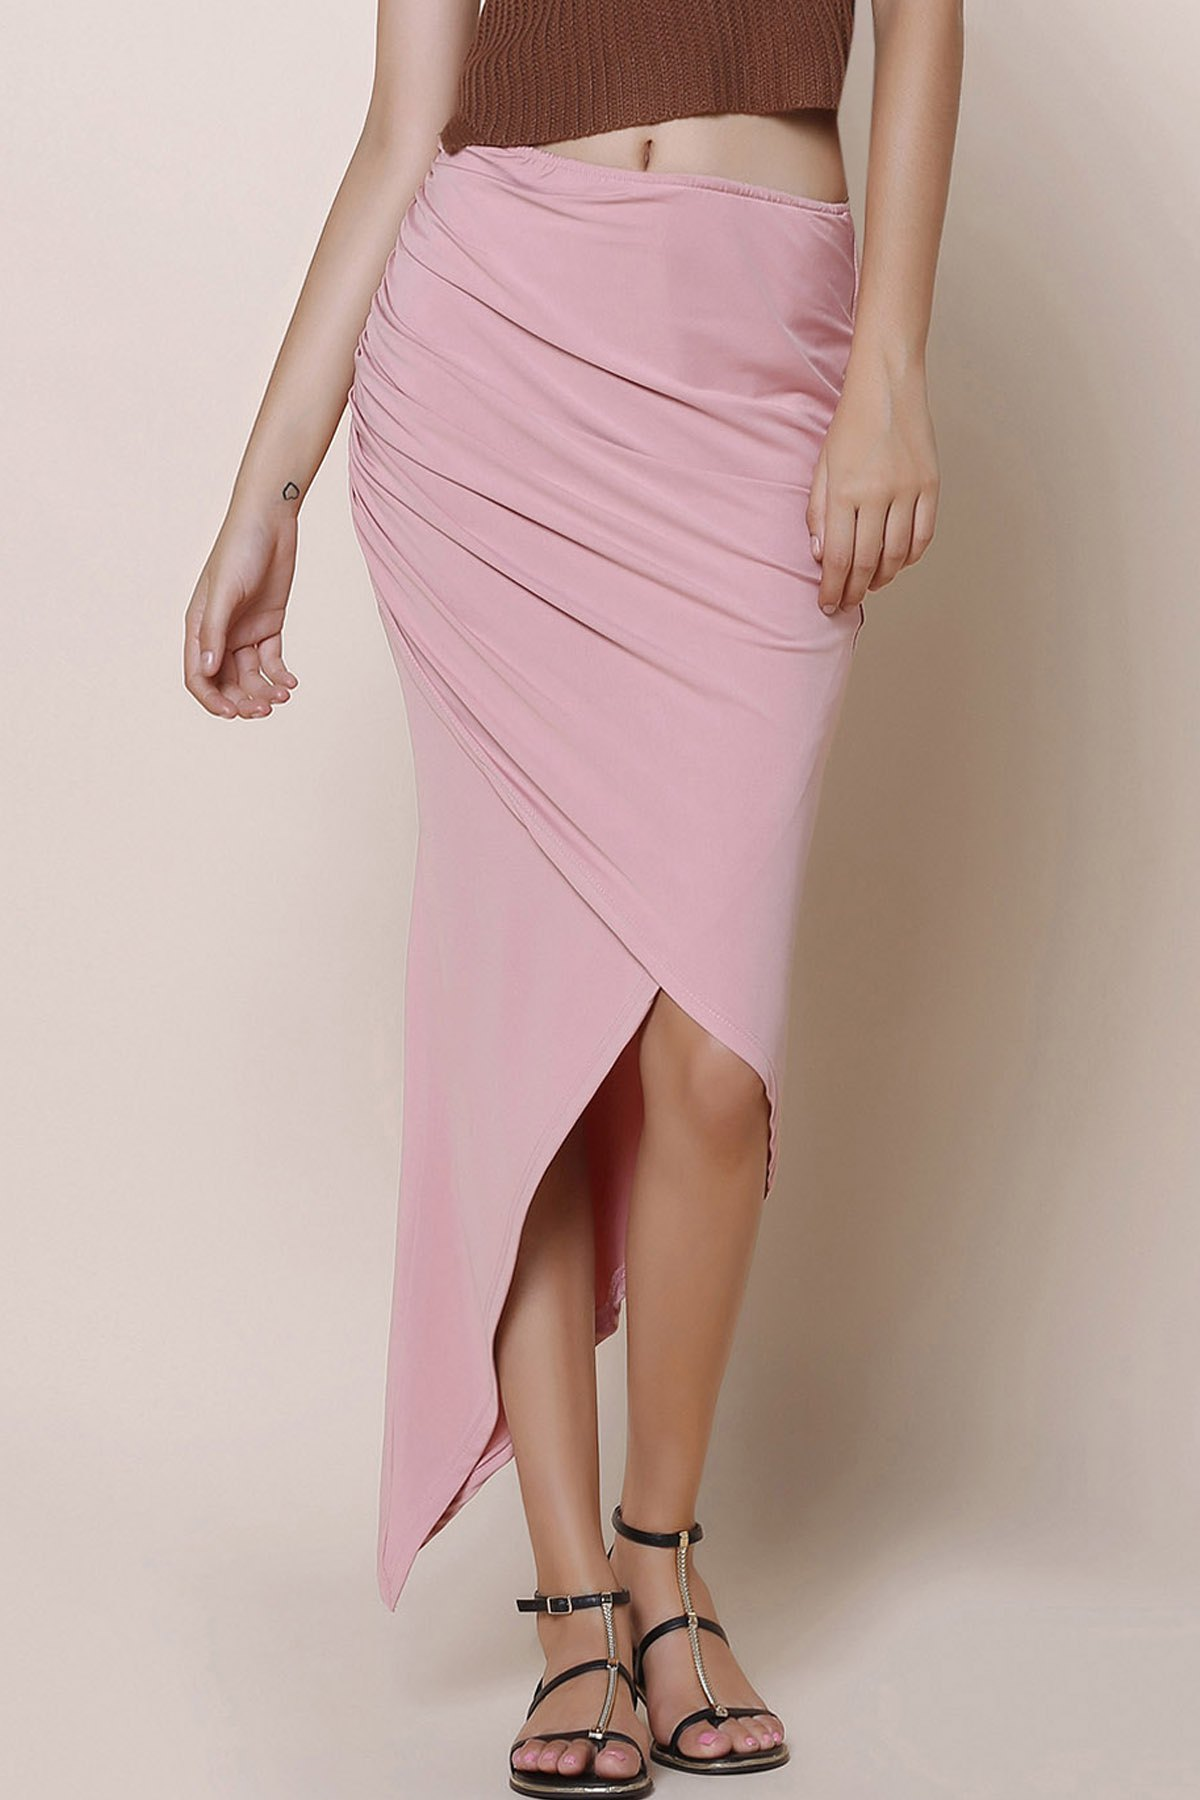 Fashionable Solid Color Asymmetric Women's Skirt - PINK ONE SIZE(FIT SIZE XS TO M)